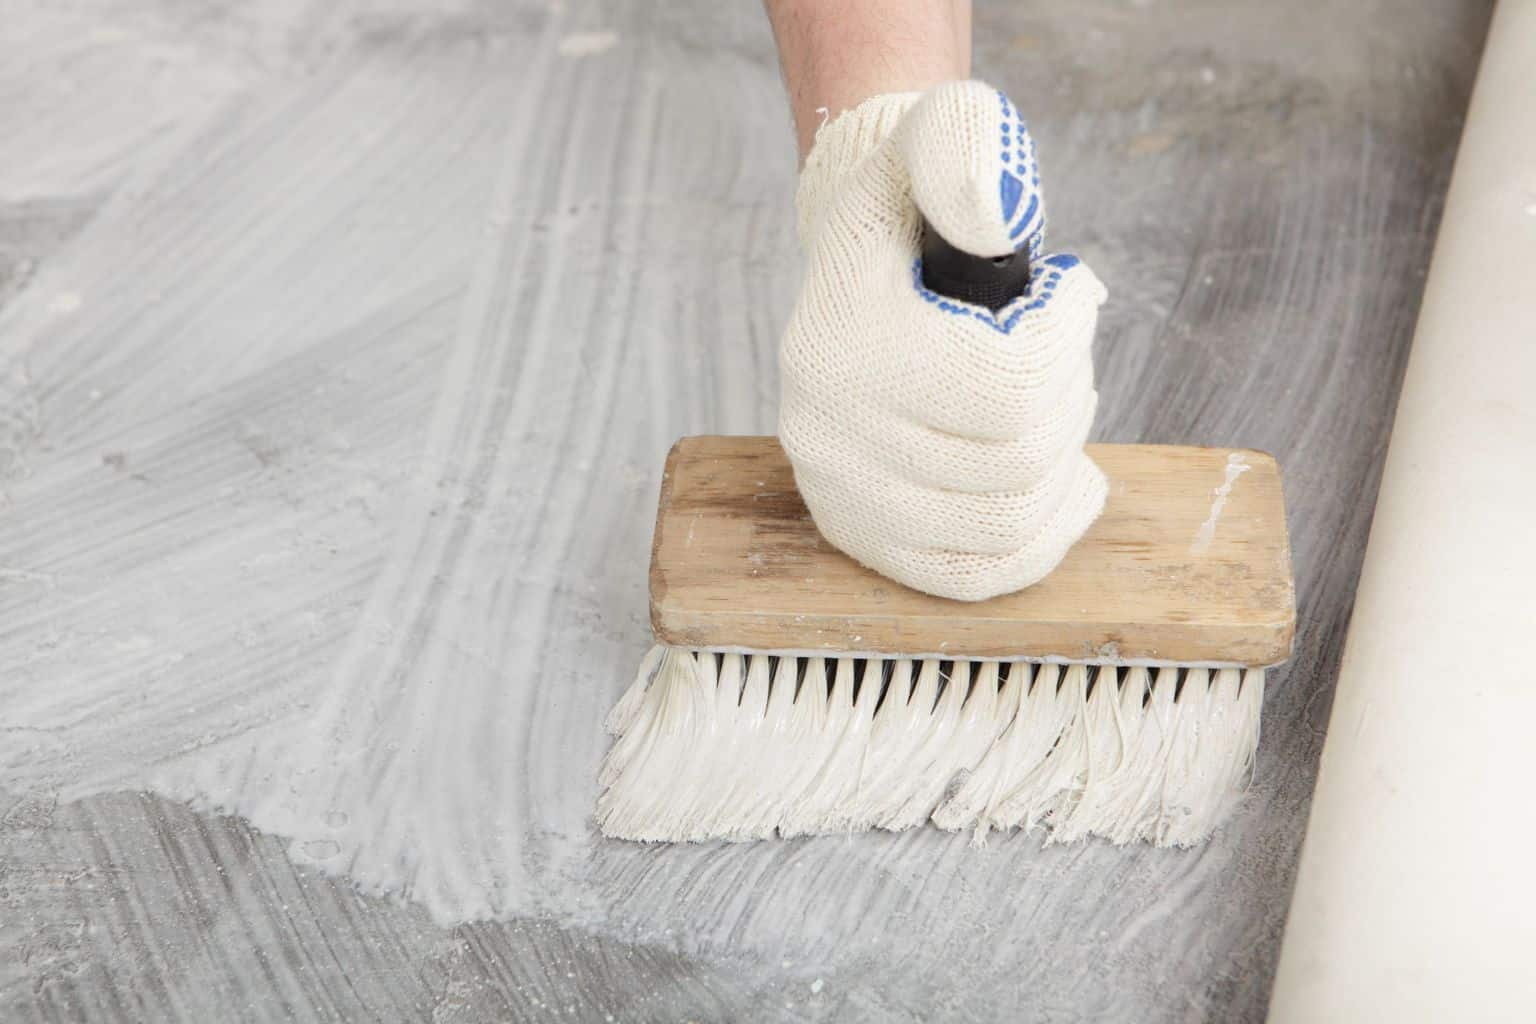 how to install linoleum flooring: a simple step-by-step guide